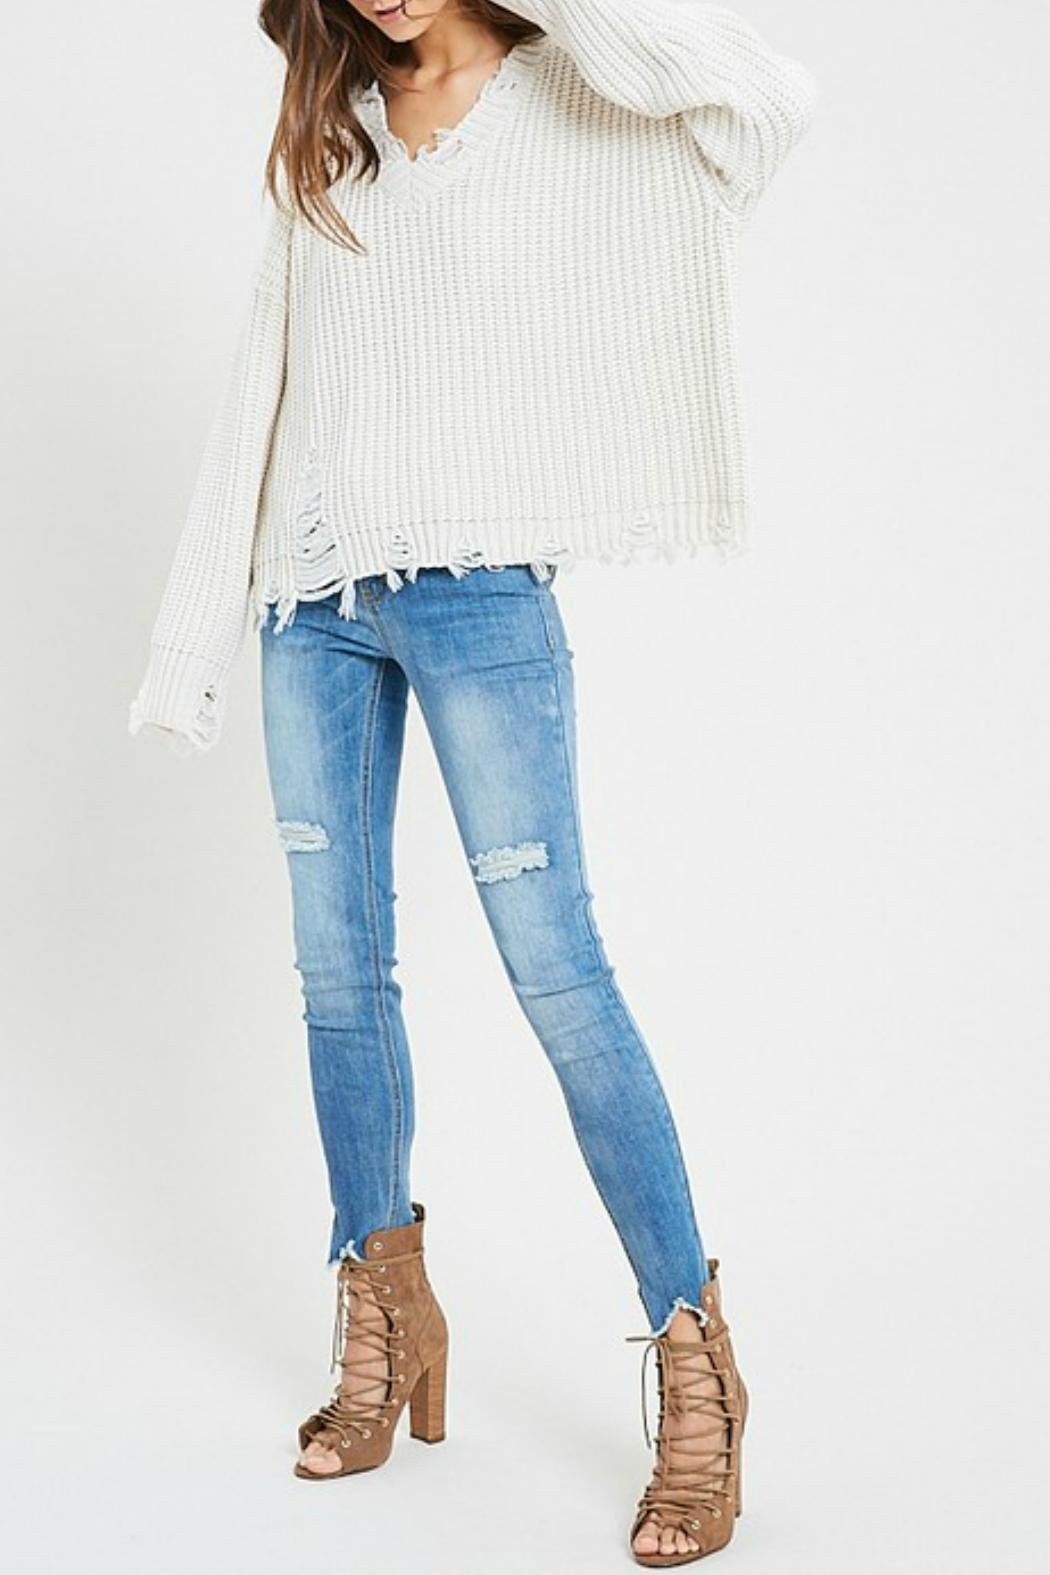 26fe58d177 Wishlist Distressed V-Neck Sweater from Texas by POE and Arrows ...